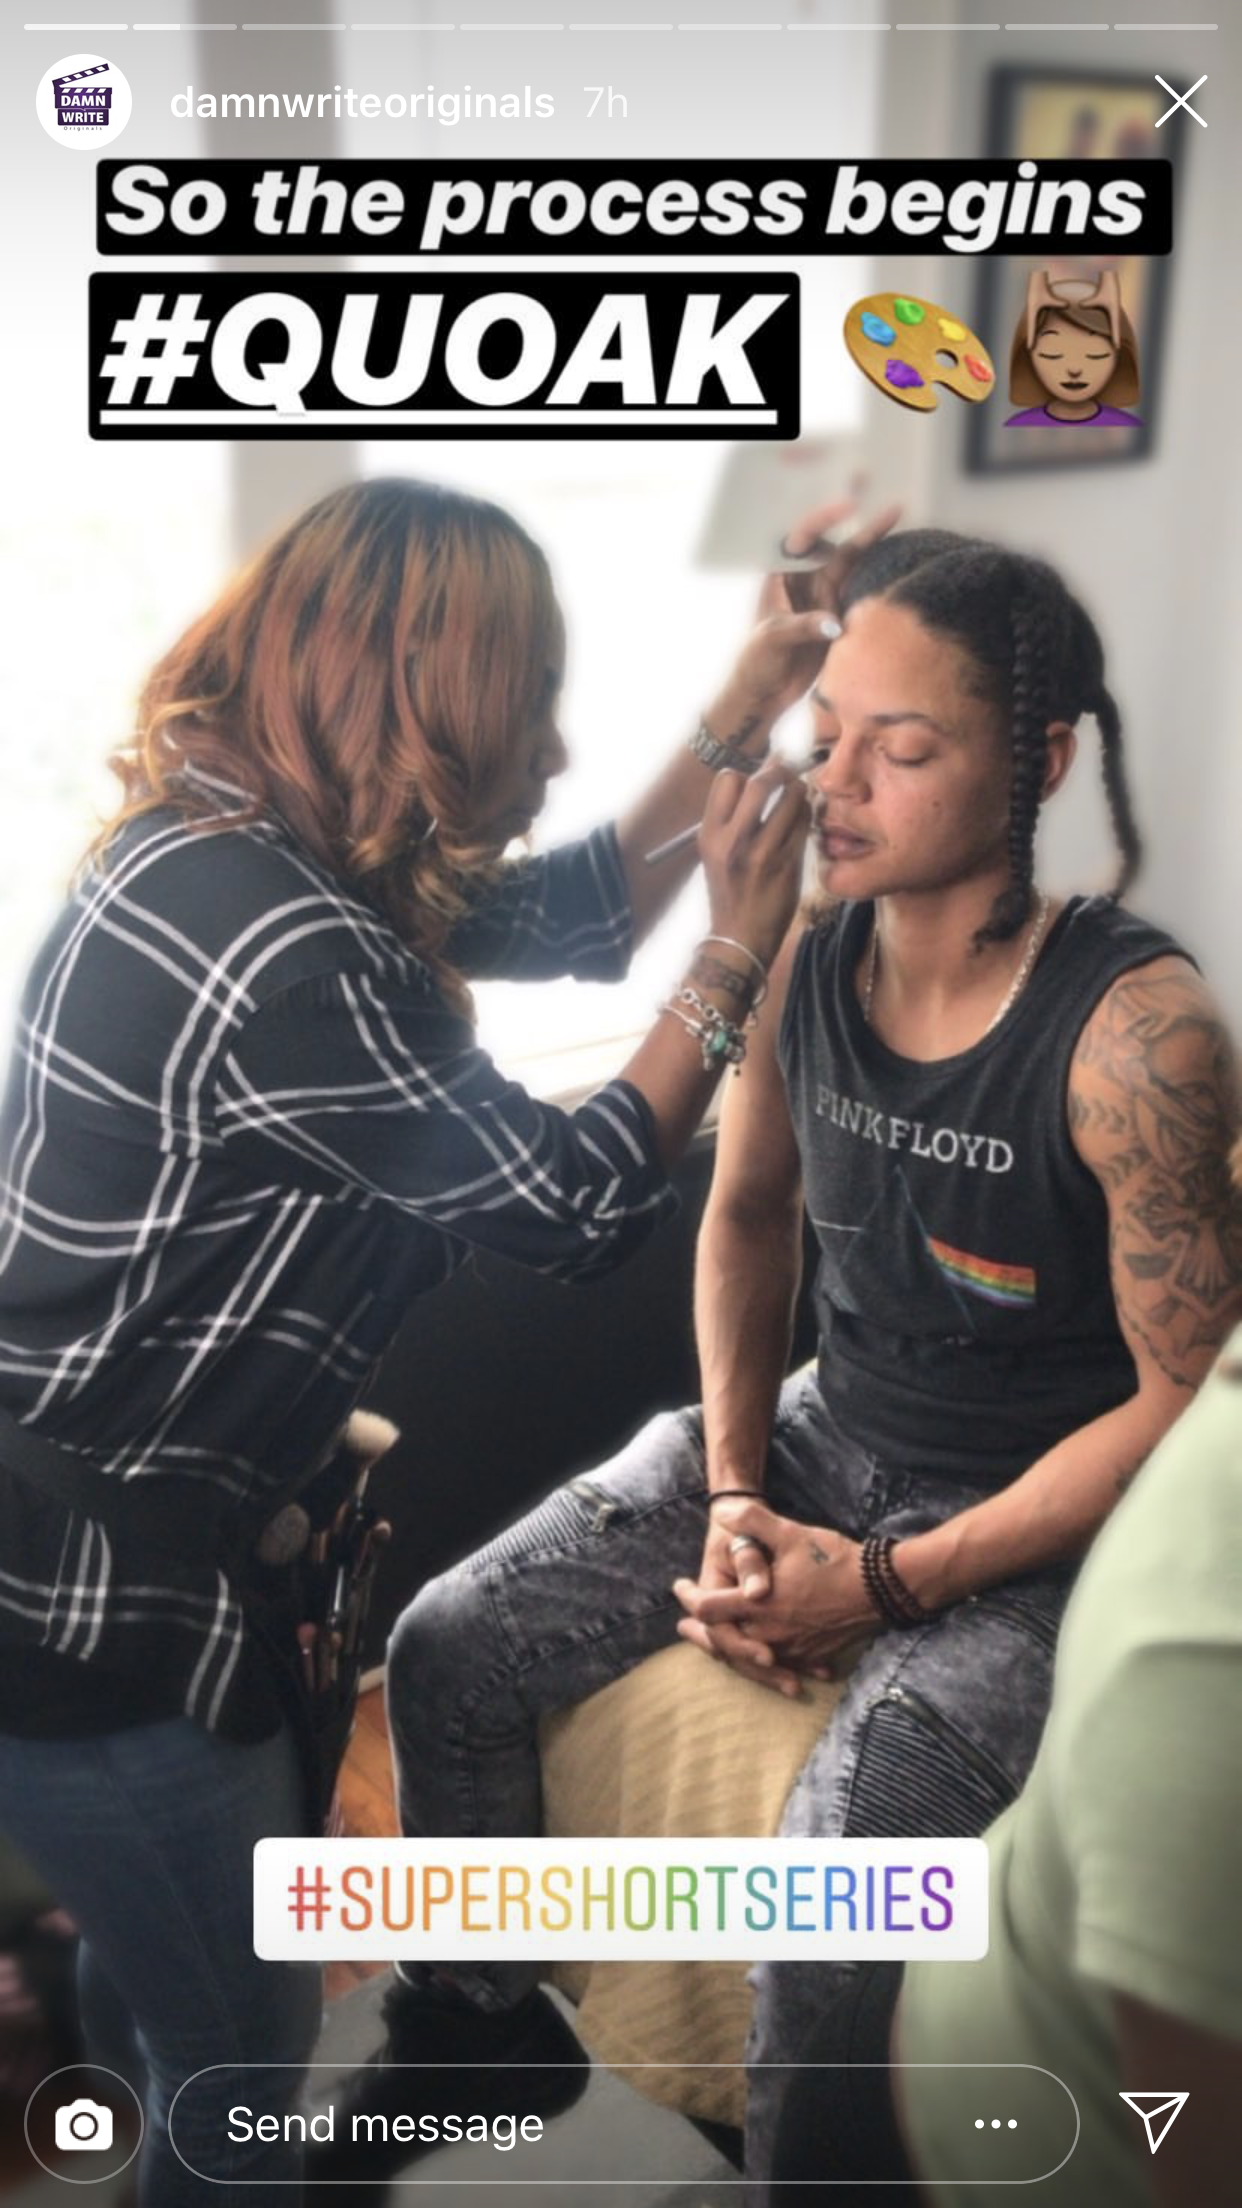 Jennifer J. working on touch ups for Zita played by Miya Golden. Photo credit: Damn Write Originals.